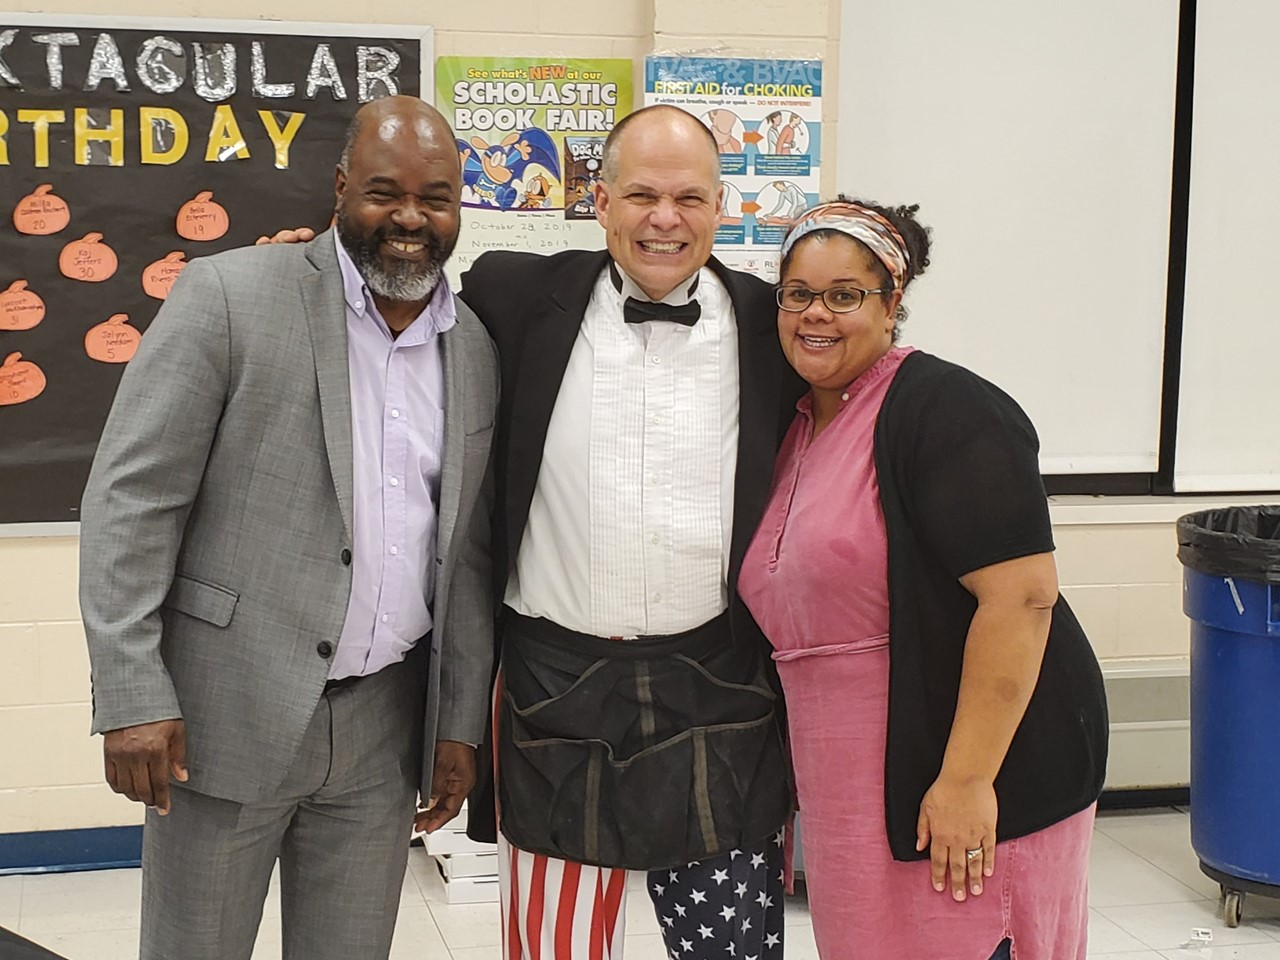 Mr. Green, Magician Bob & Mrs. Gibson